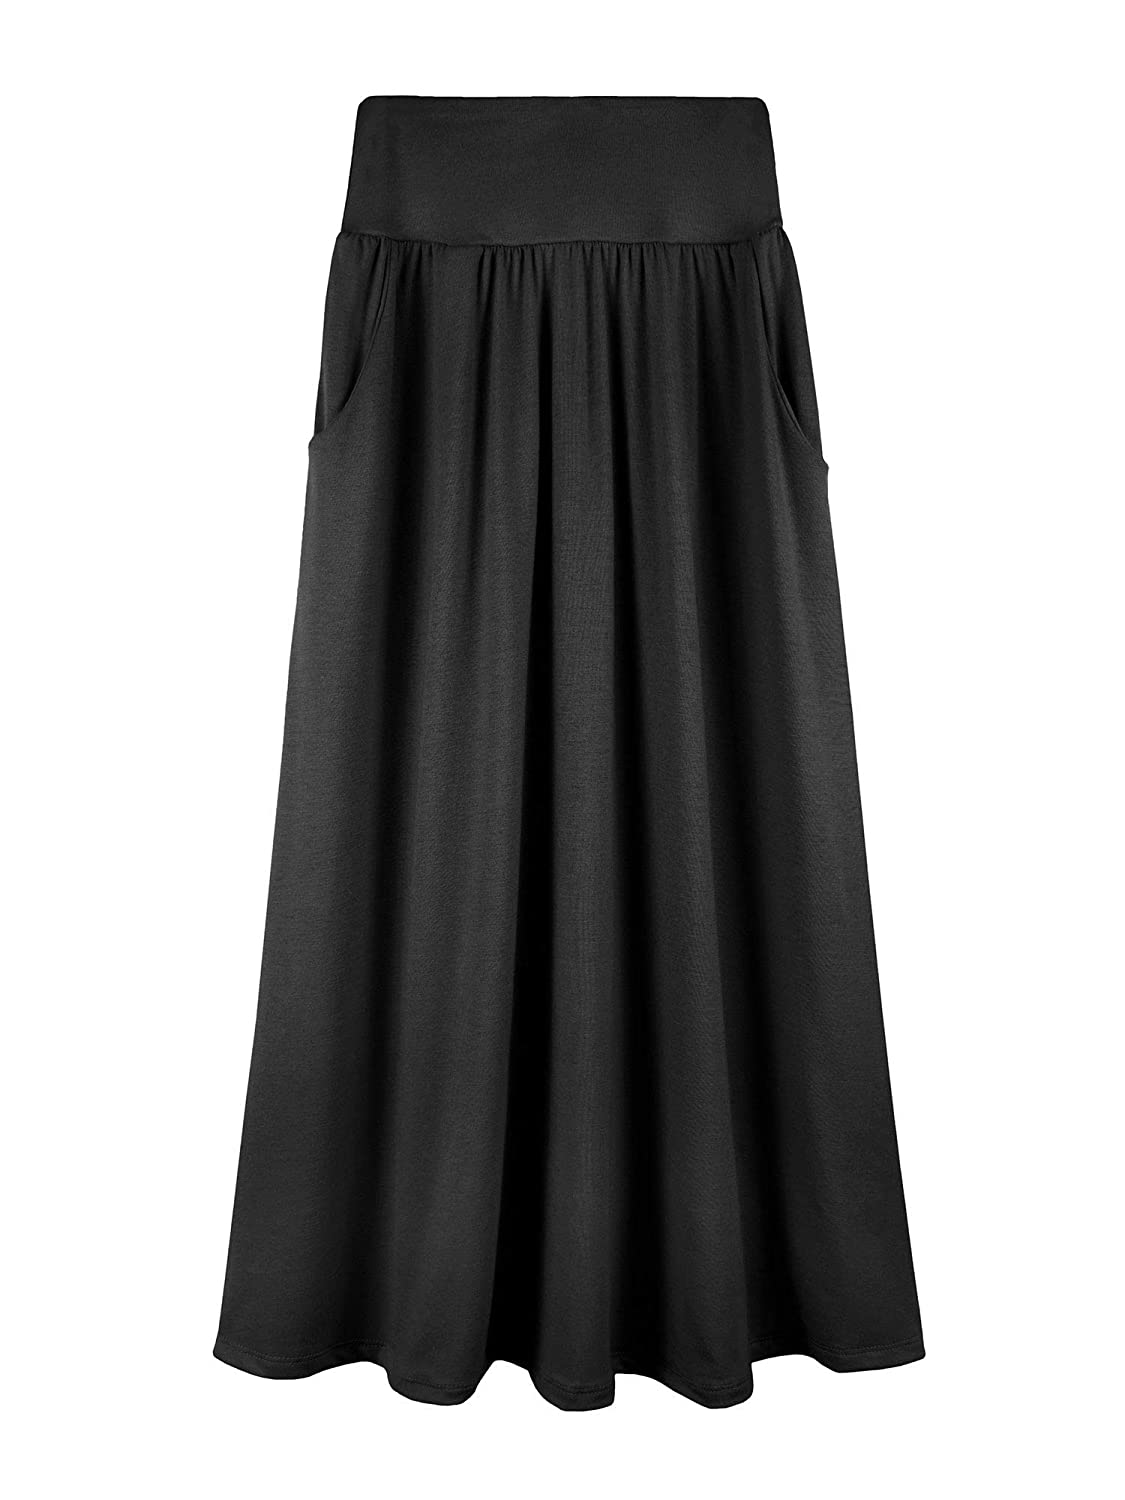 Fashion California Girls 7-16 Years Poly or Rayon Solid Maxi Skirt with Pockets S-XL